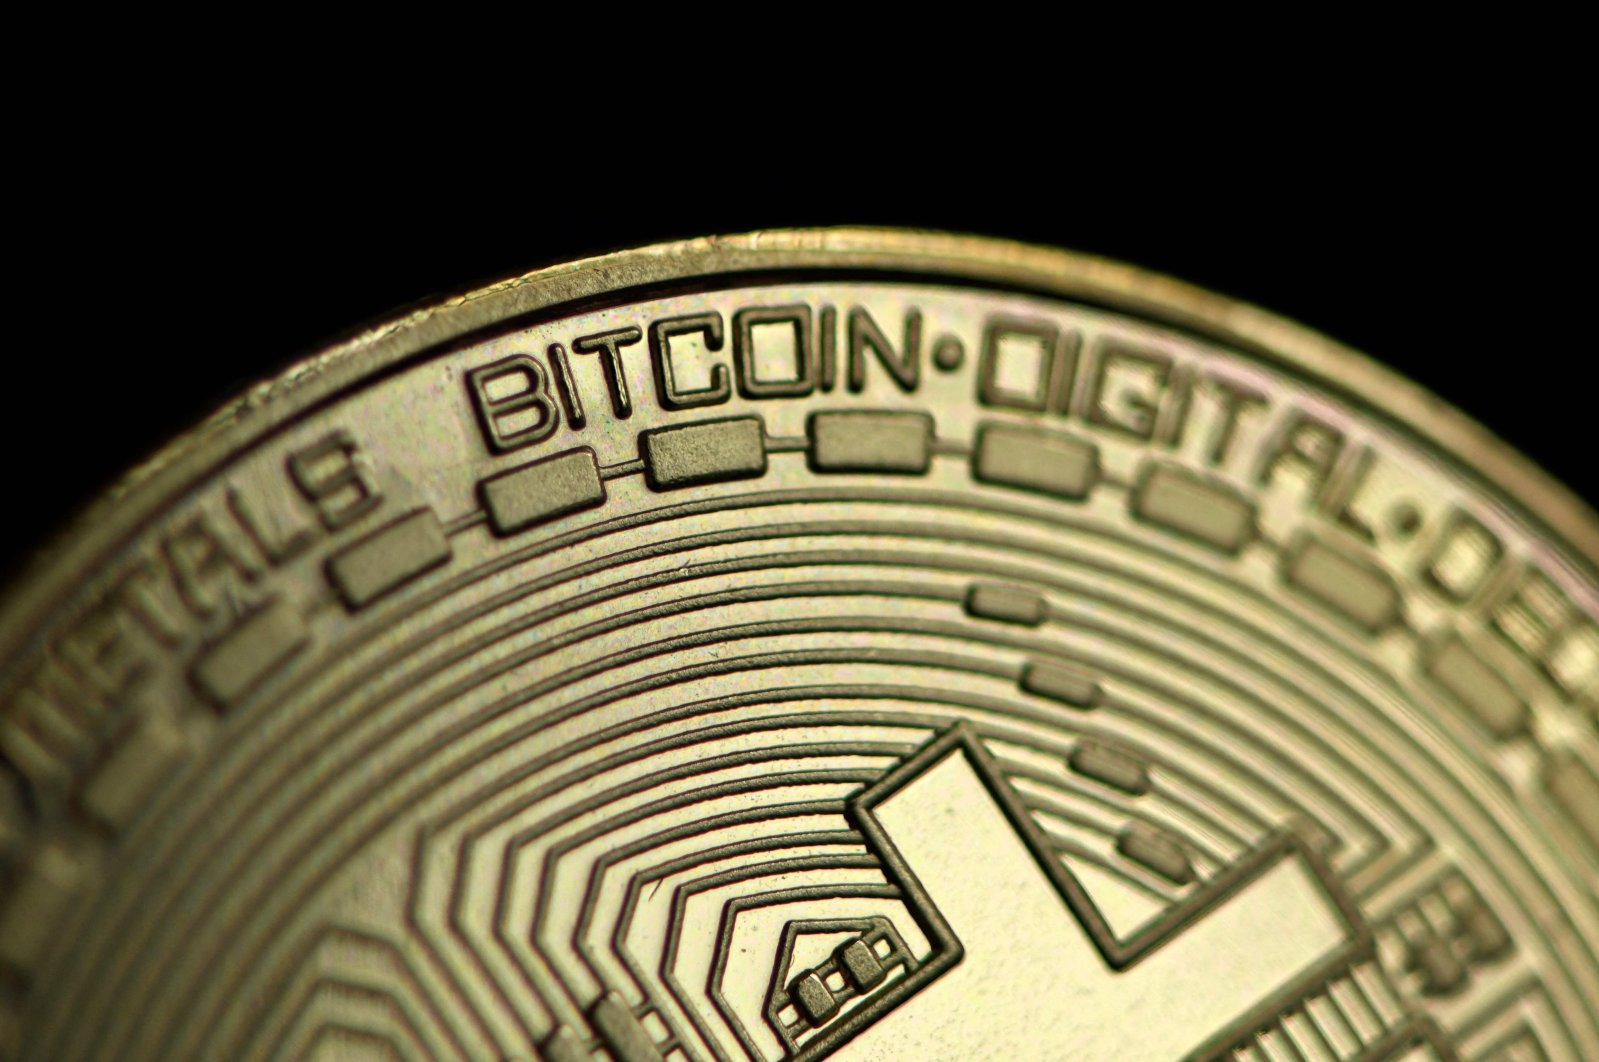 A physical imitation of a Bitcoin is pictured in Dortmund, western Germany, Jan. 26, 2020. (AFP Photo)